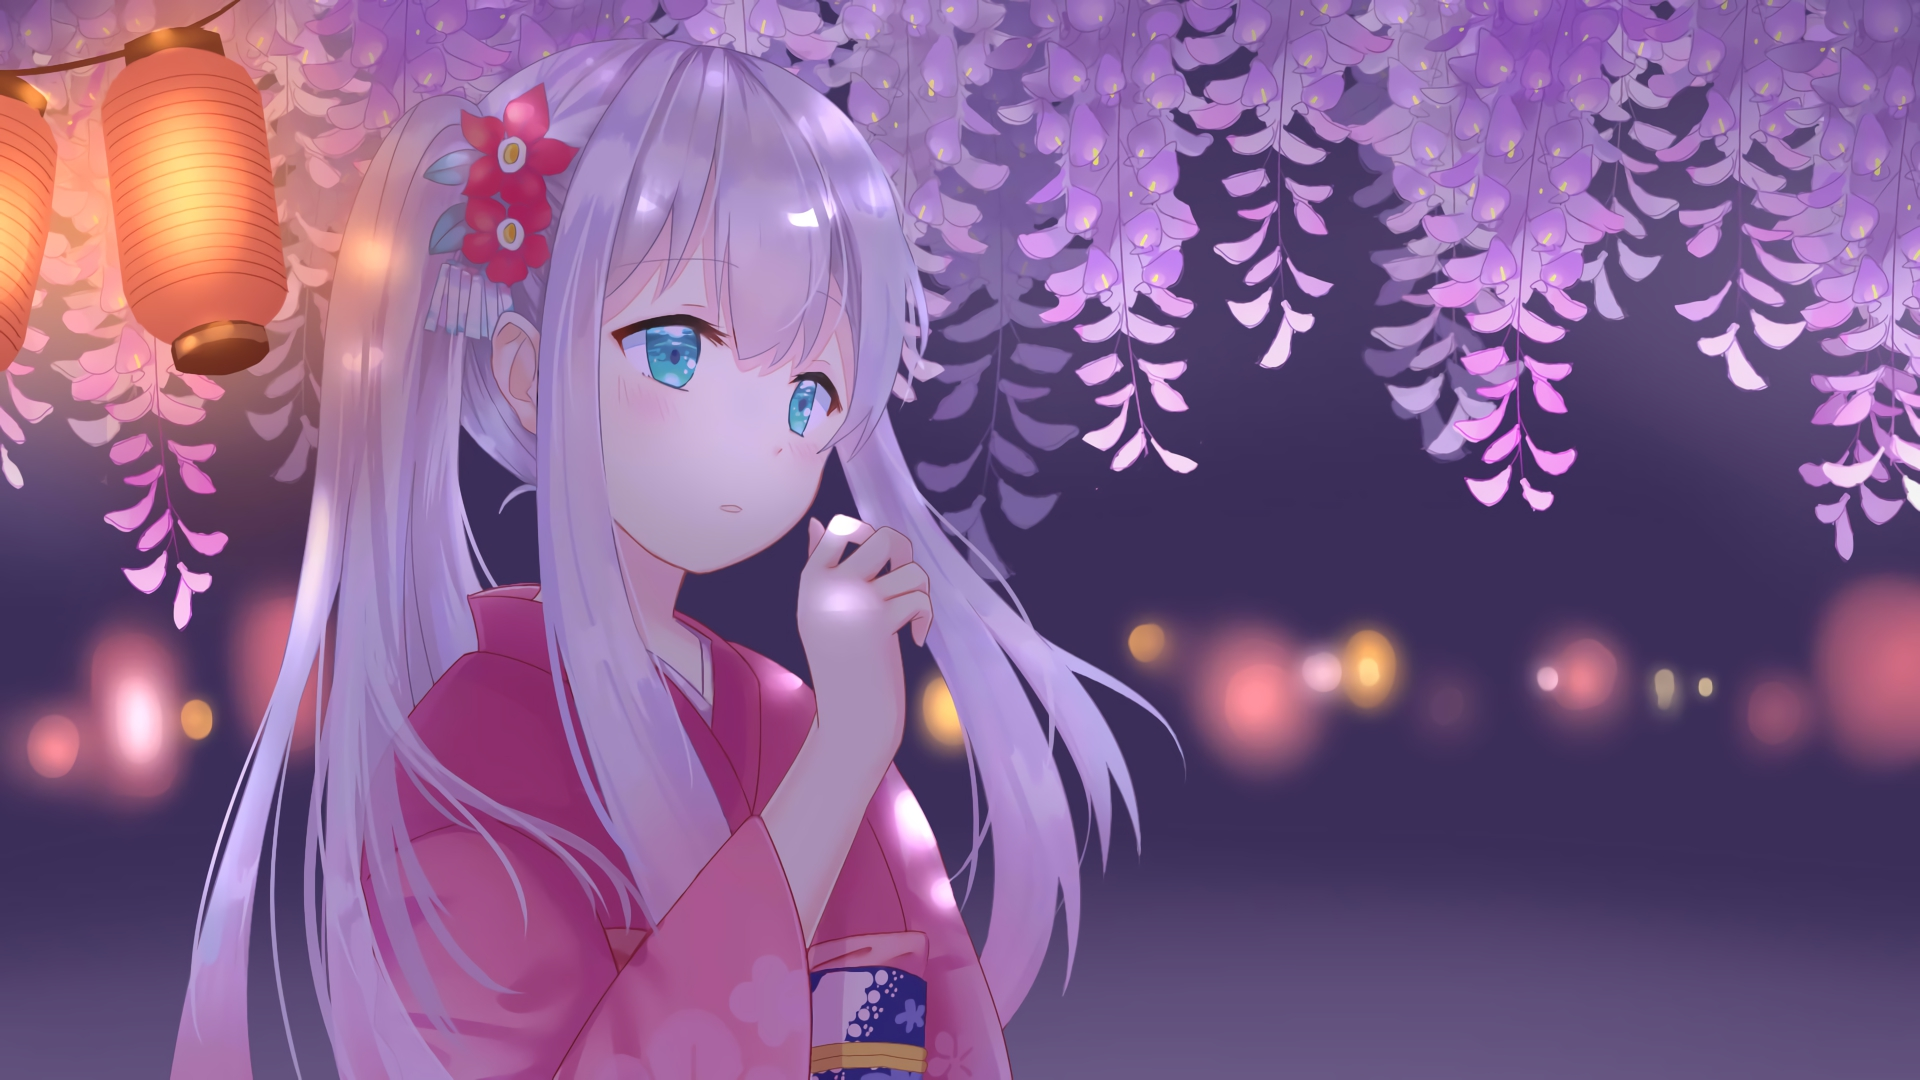 Kawaii Animae Girl Wallpaper 埃罗芒阿老师 高清壁纸 桌面背景 1920x1080 Id 836124 Wallpaper Abyss